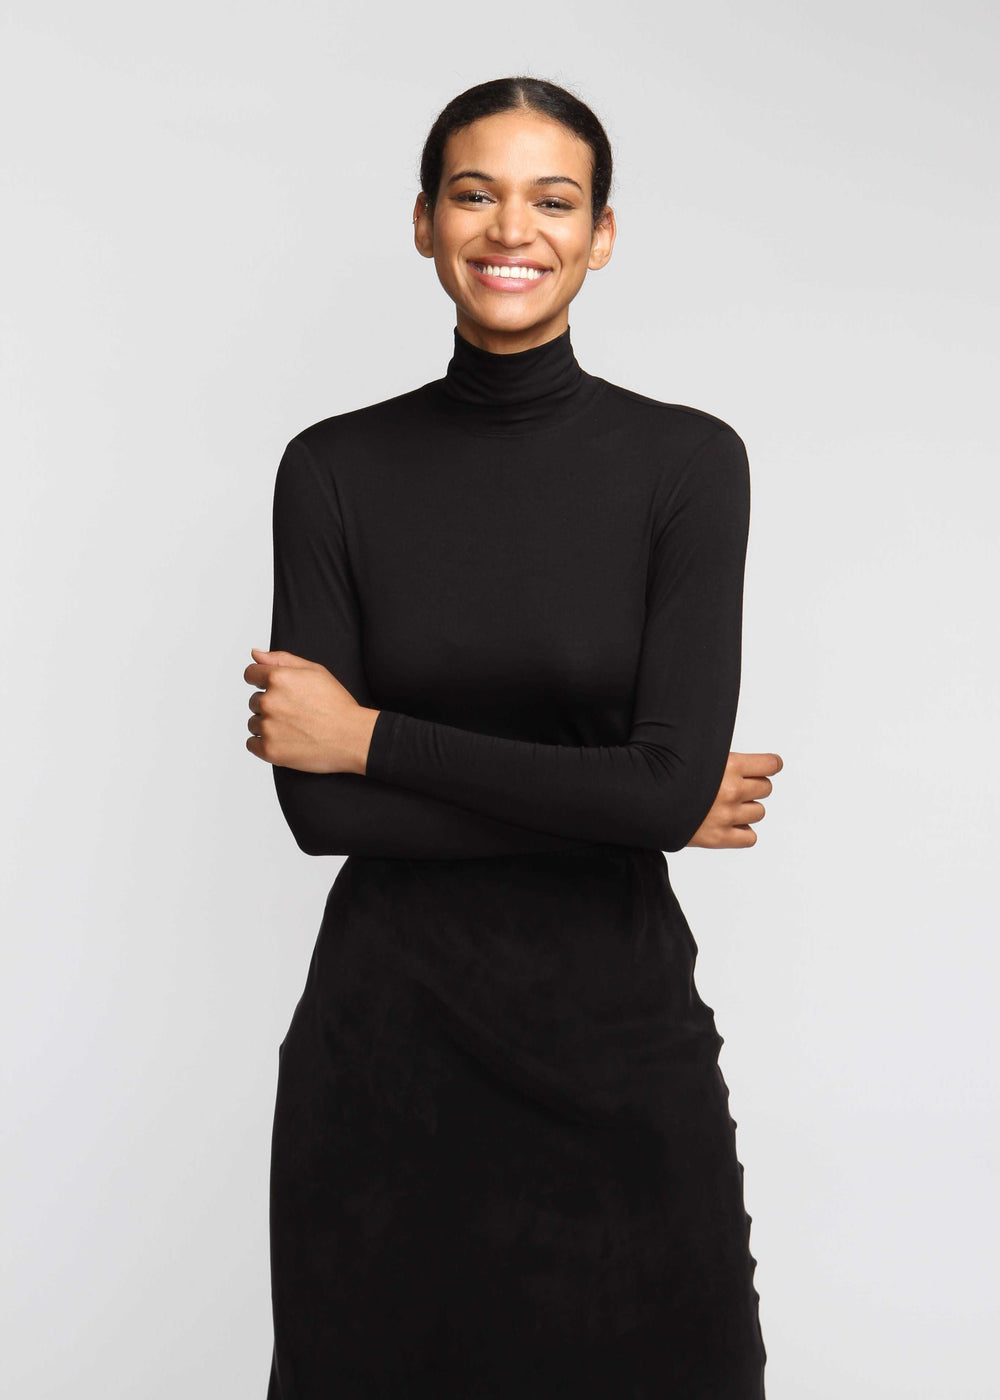 Turtleneck T - Black - The Frock NYC